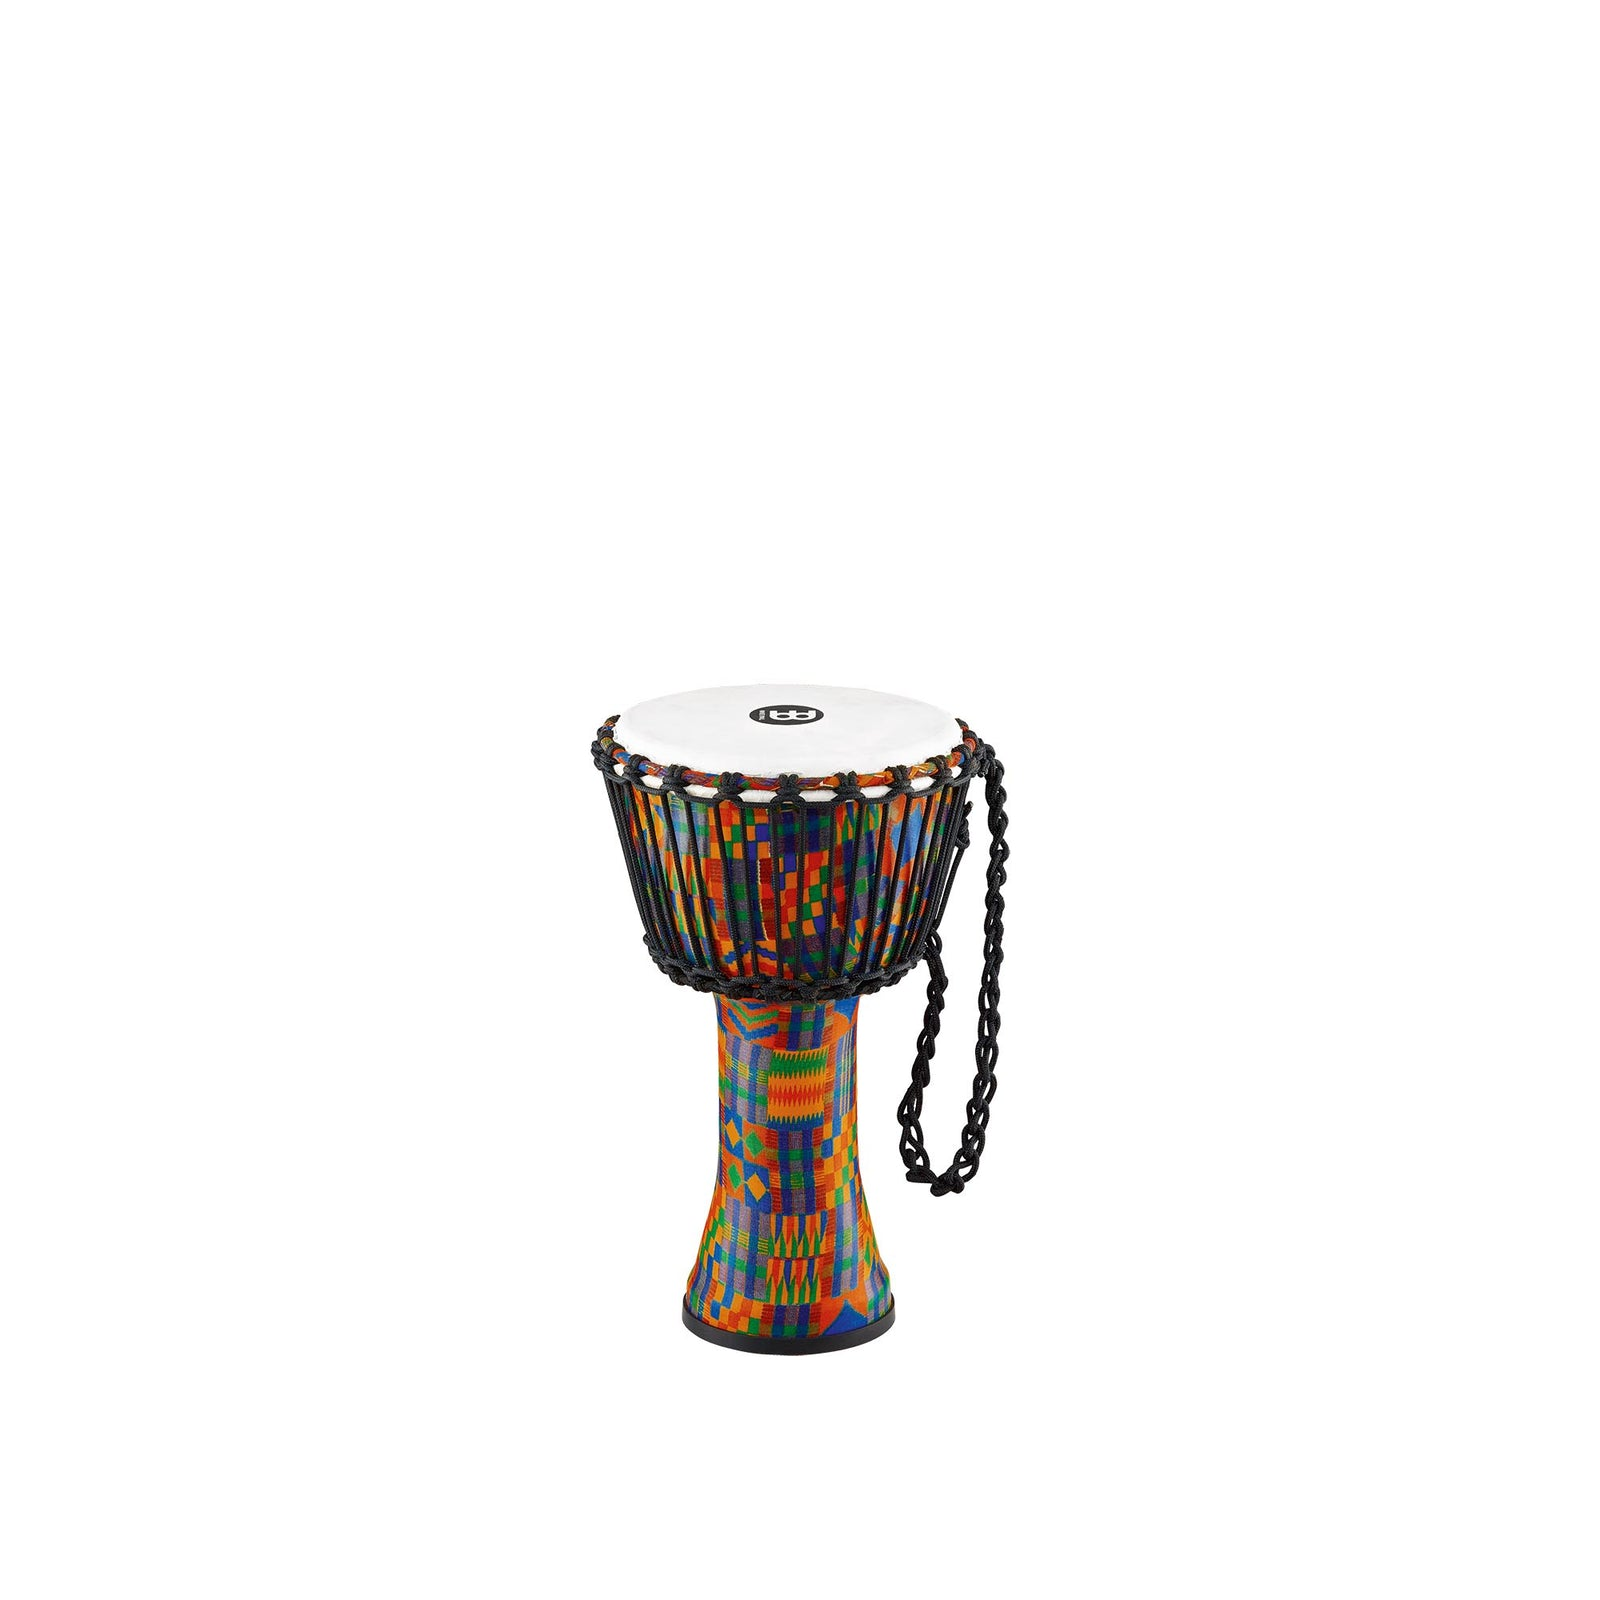 "Meinl 8"" Travel Djembe - Rope-Tuned - Synthetic - Kenyan Quilt"